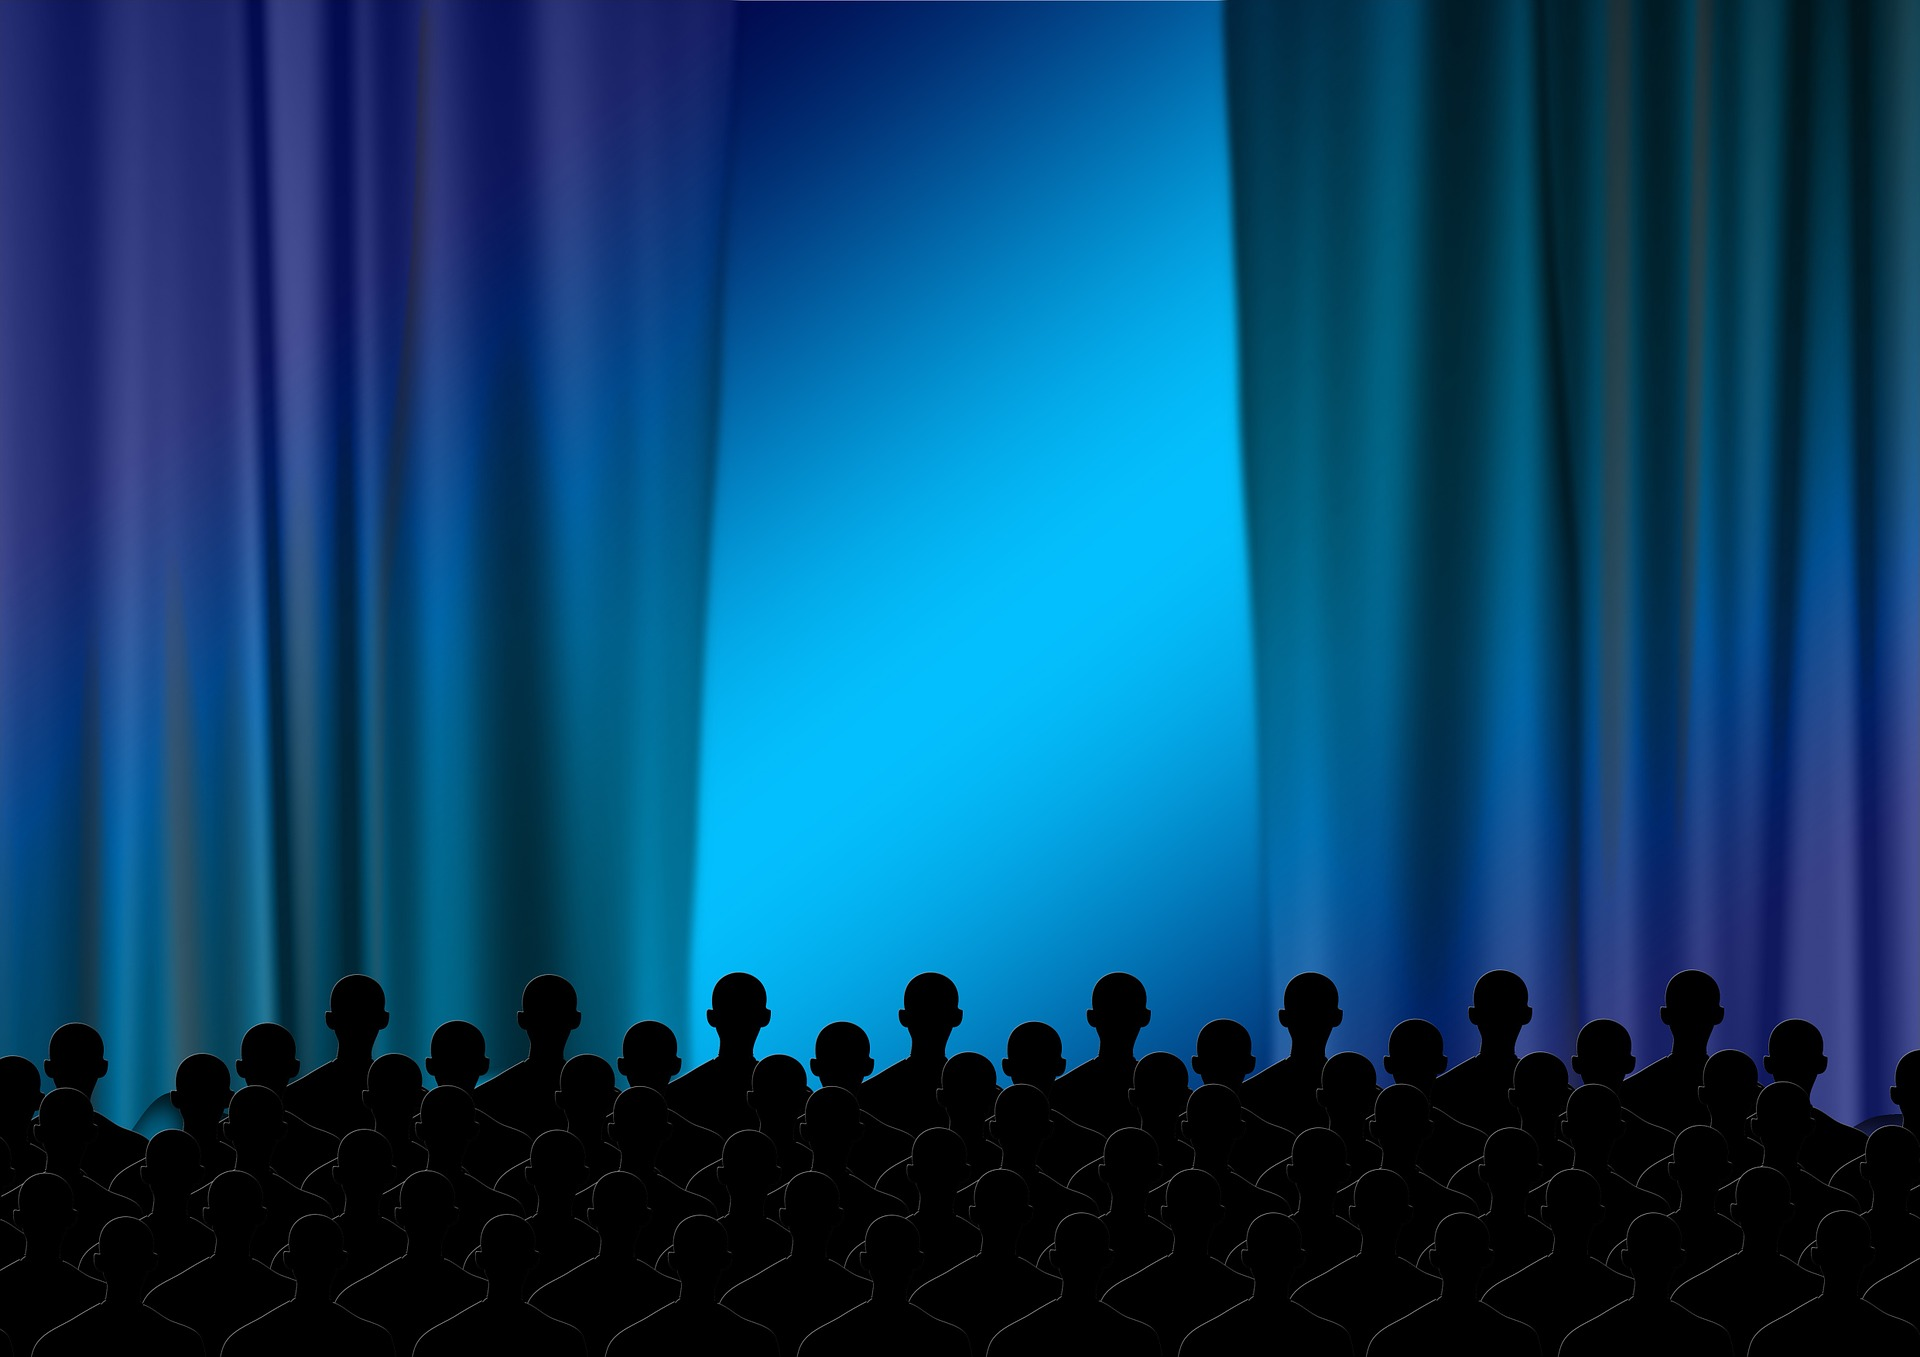 People standing up in front of a theater's curtains